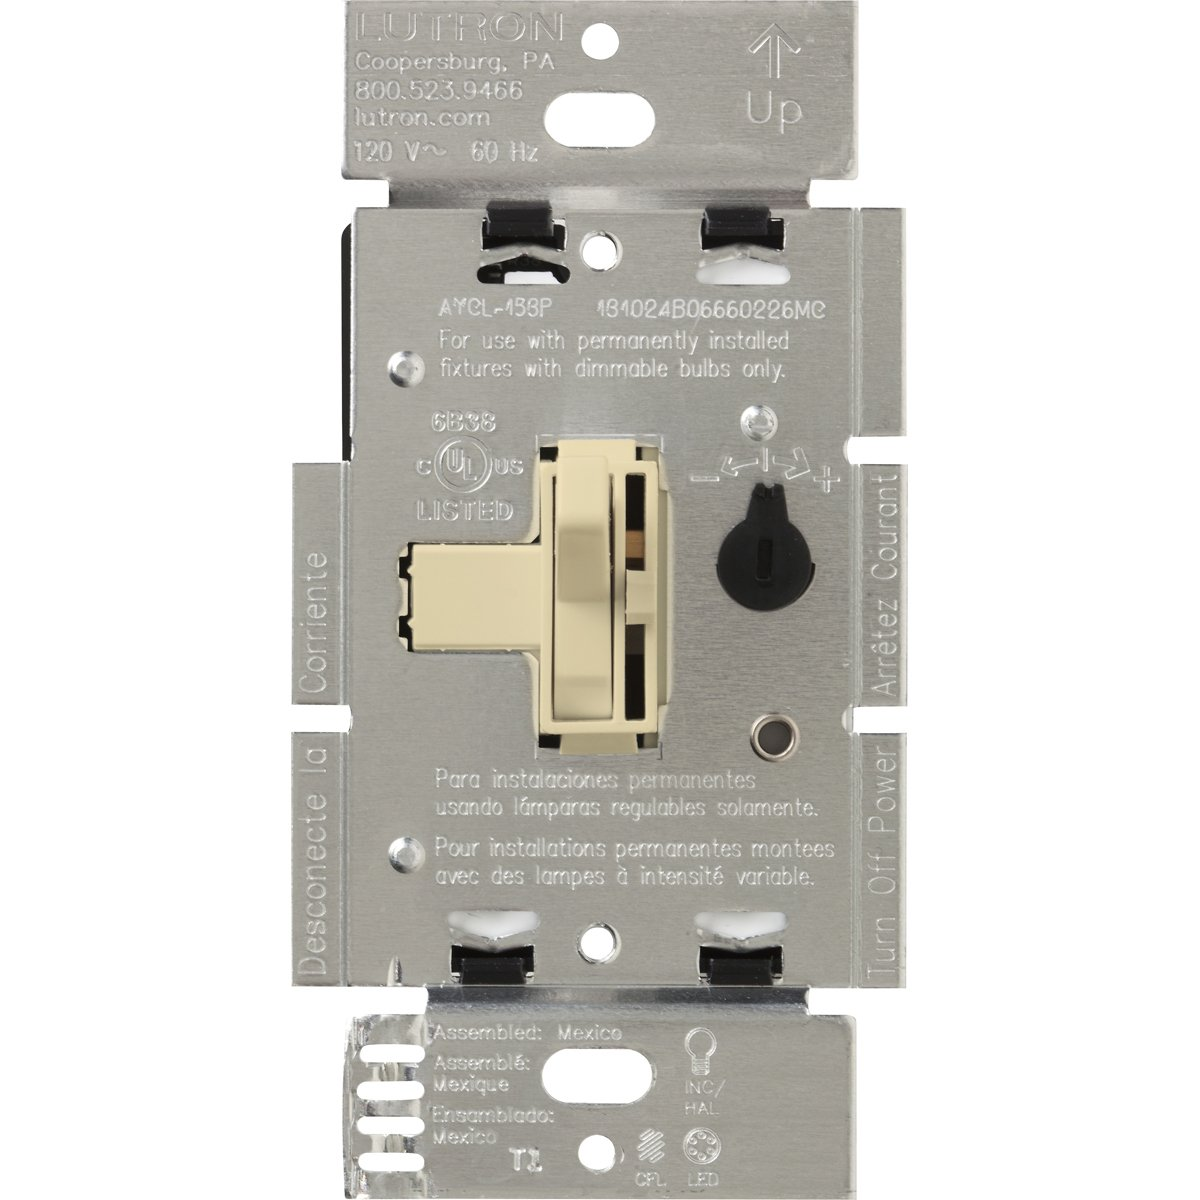 Lutron AYCL-253P-IV LED+ Dimmer Switch, Ivory